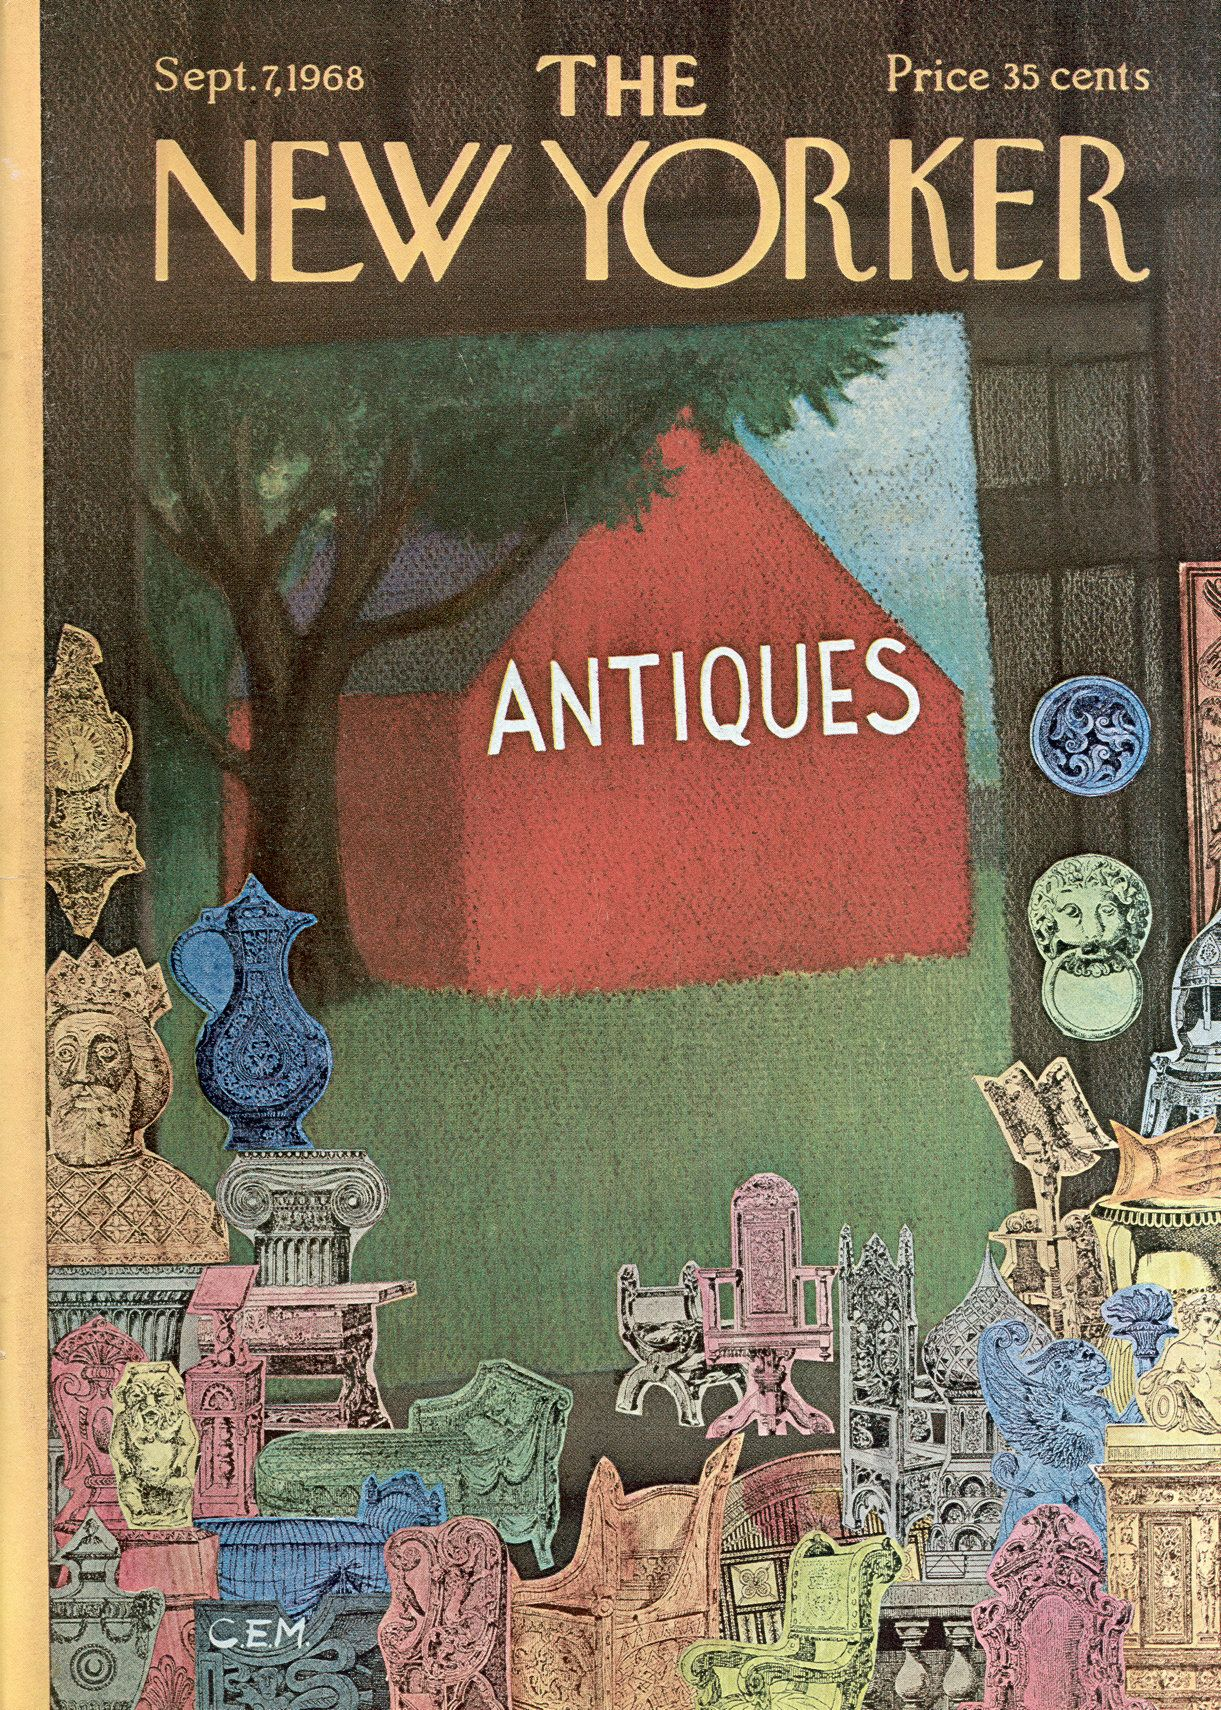 The New Yorker - Saturday, September 7, 1968 - Issue # 2273 - Vol. 44 - N° 29 - Cover by : Charles E. Martin